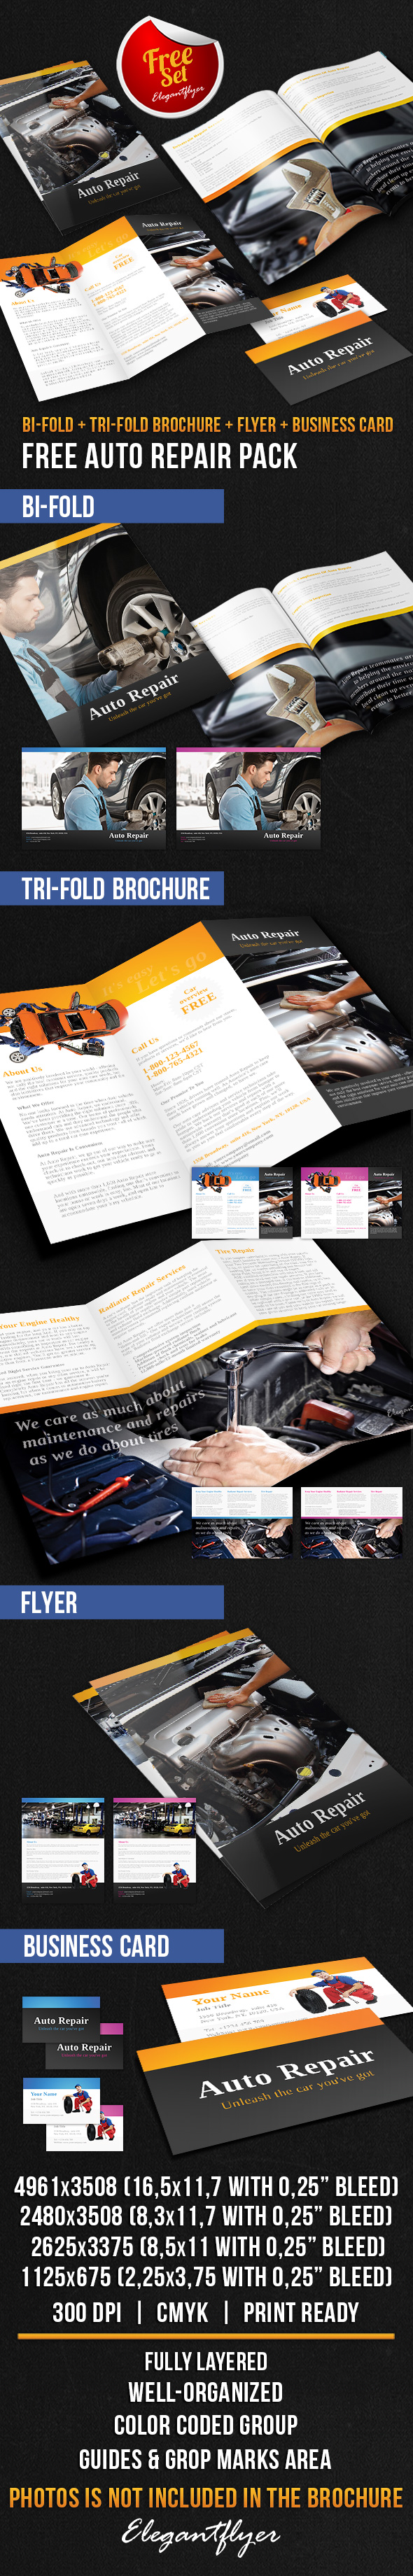 auto repair brochure pack free psd template brochure template